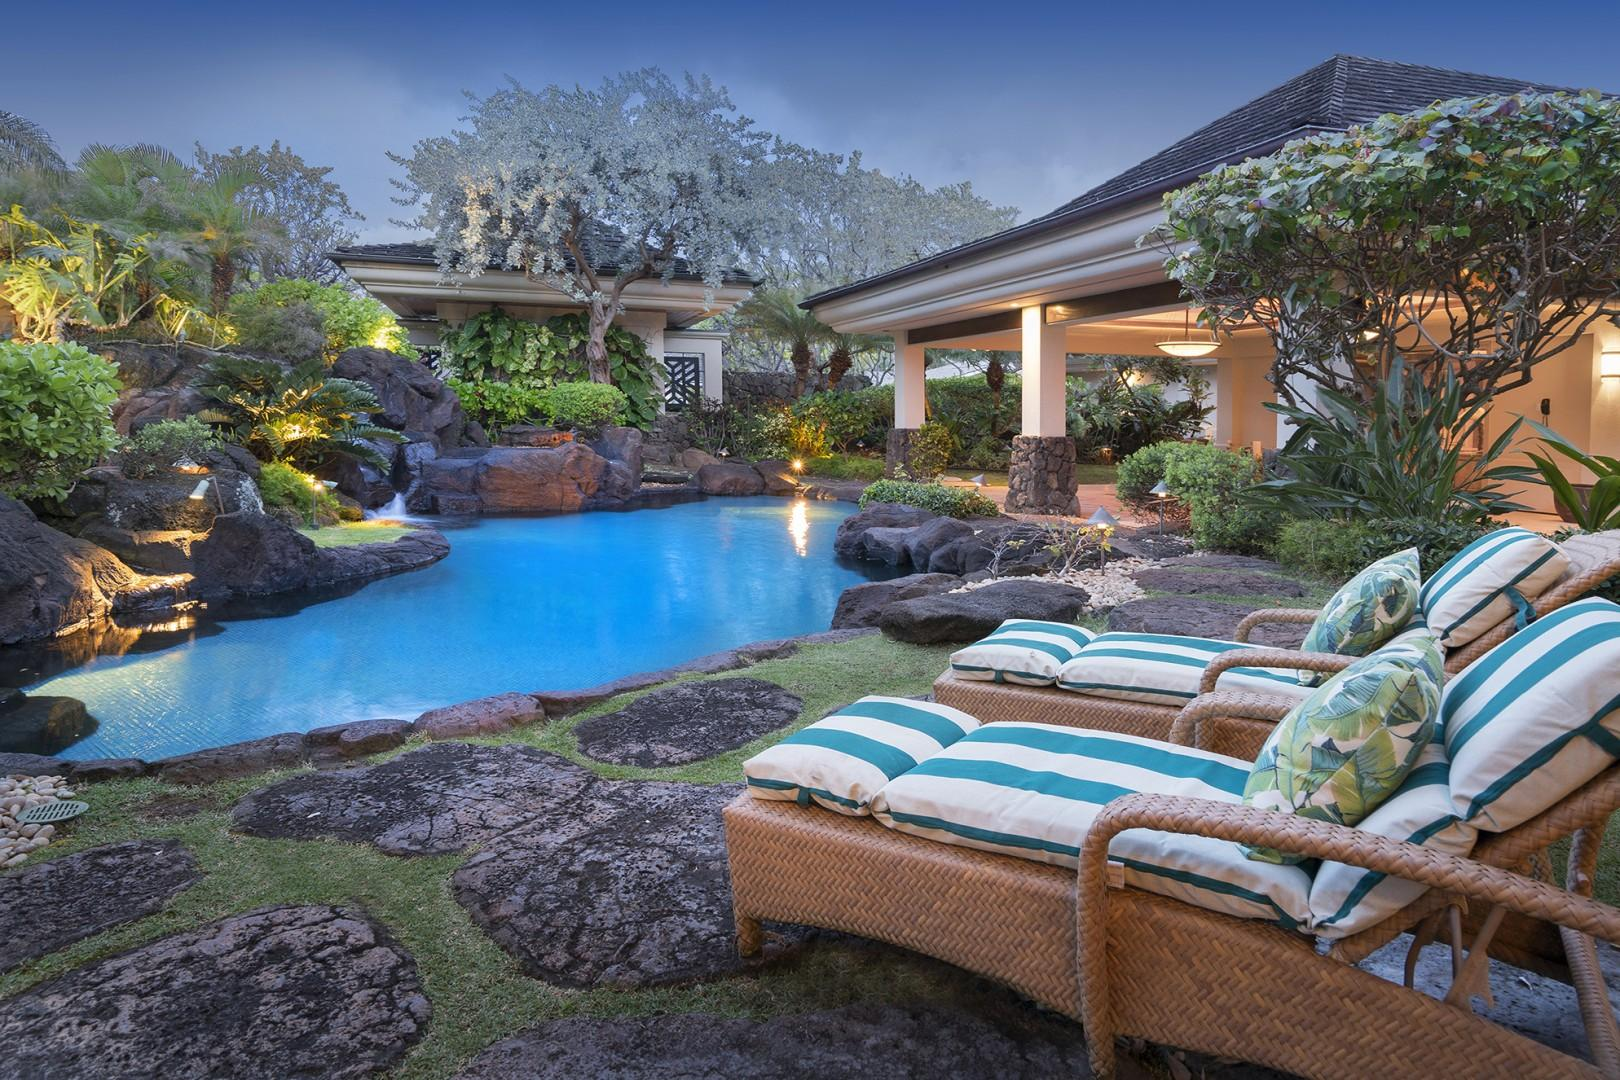 Tropical lagoon style pool and spa with natural rocks and cascading waterfalls.